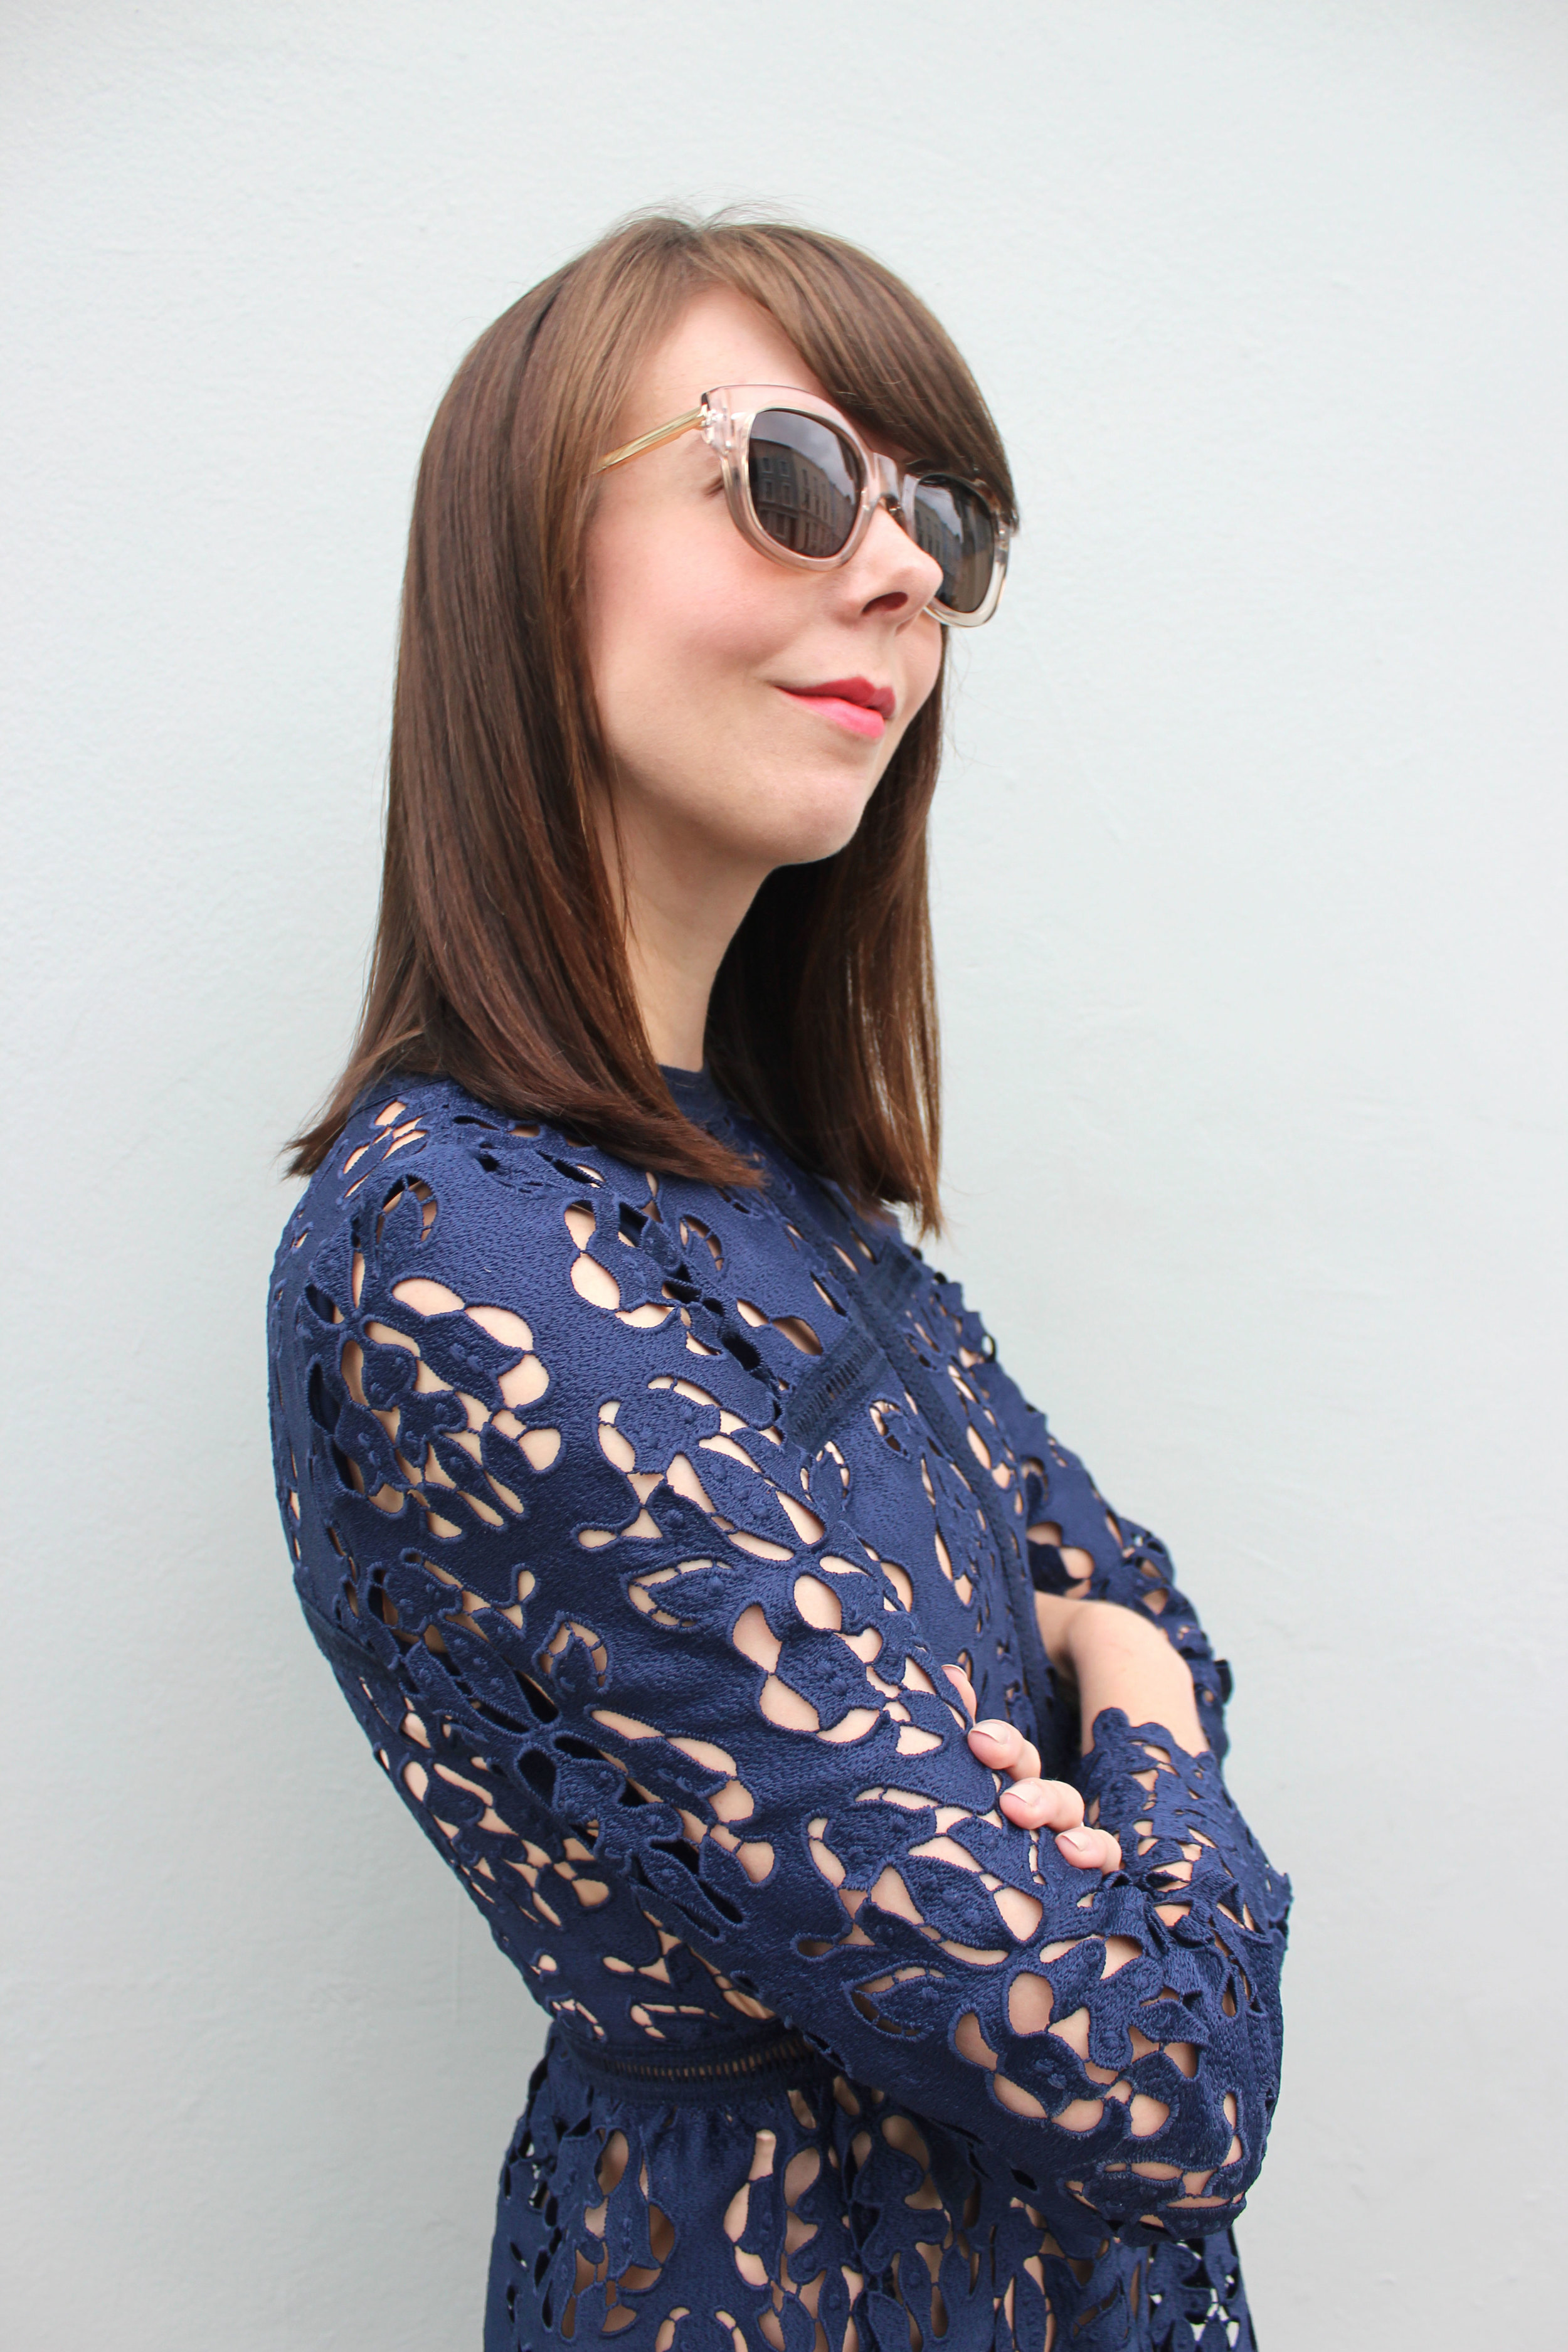 Striking a pose in Le Specs sunnies.